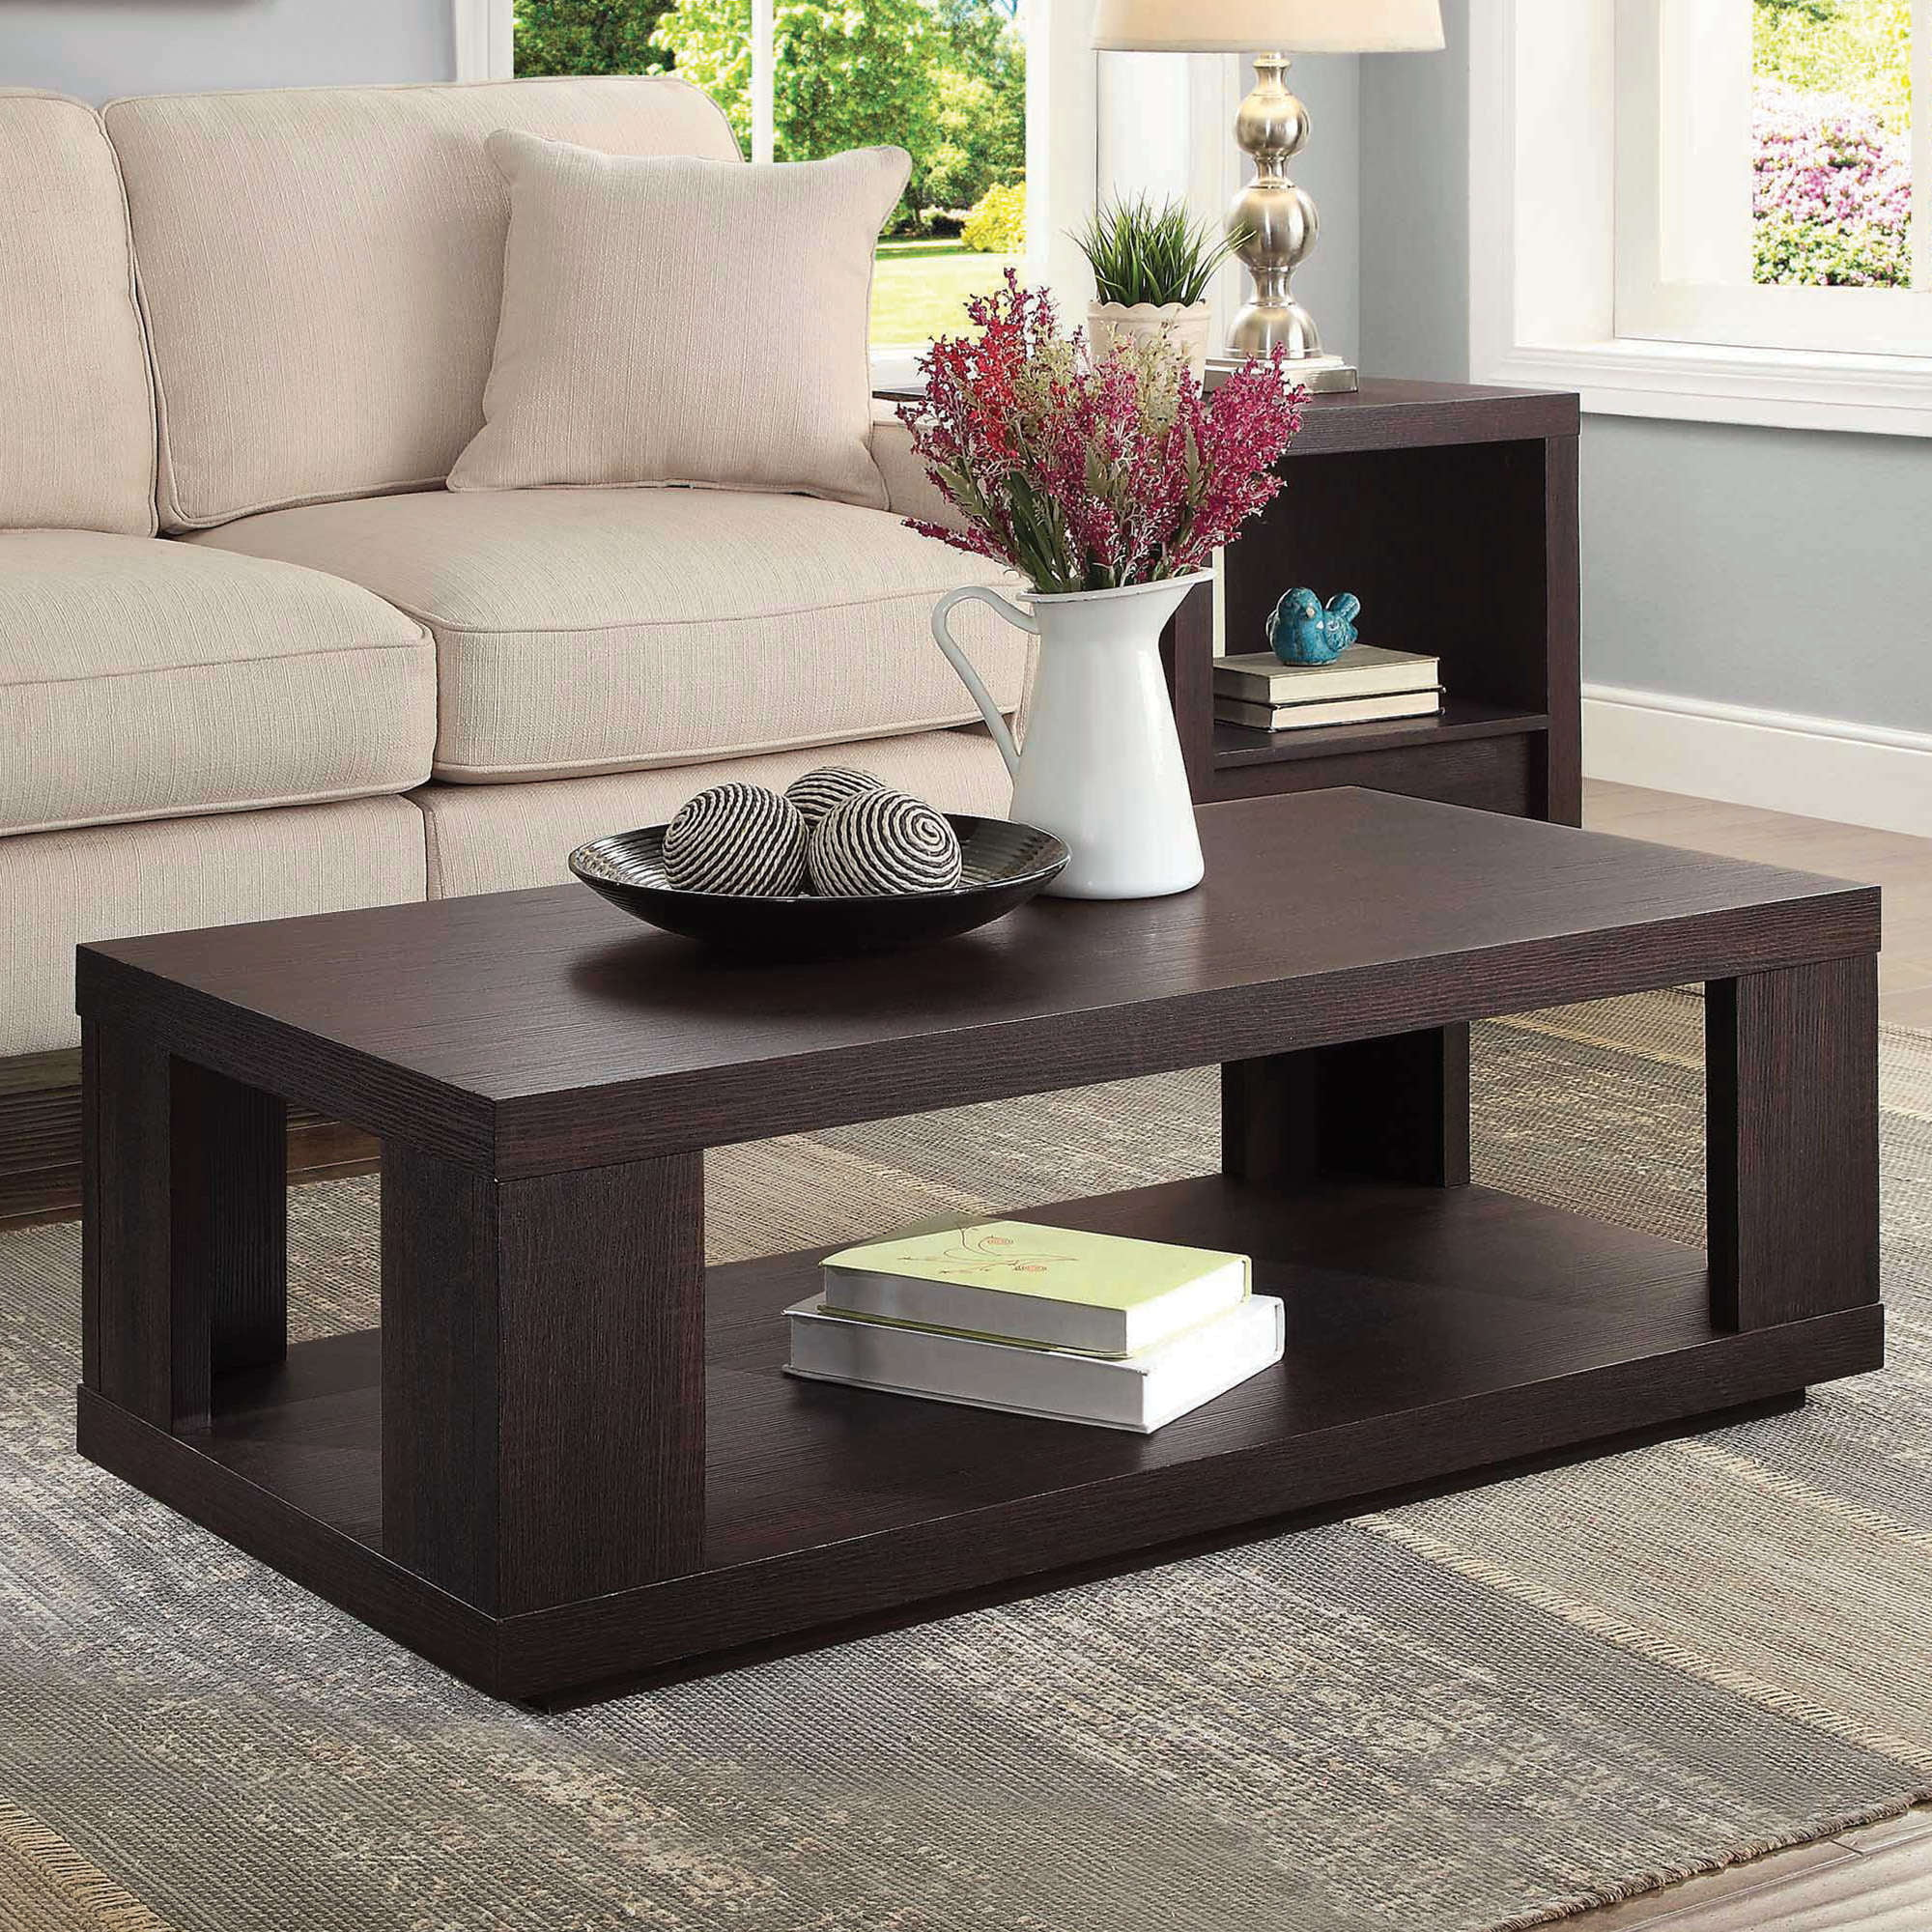 Better Homes & Gardens Steele Coffee Table with Spacious Lower Shelf, Espresso Finish by .